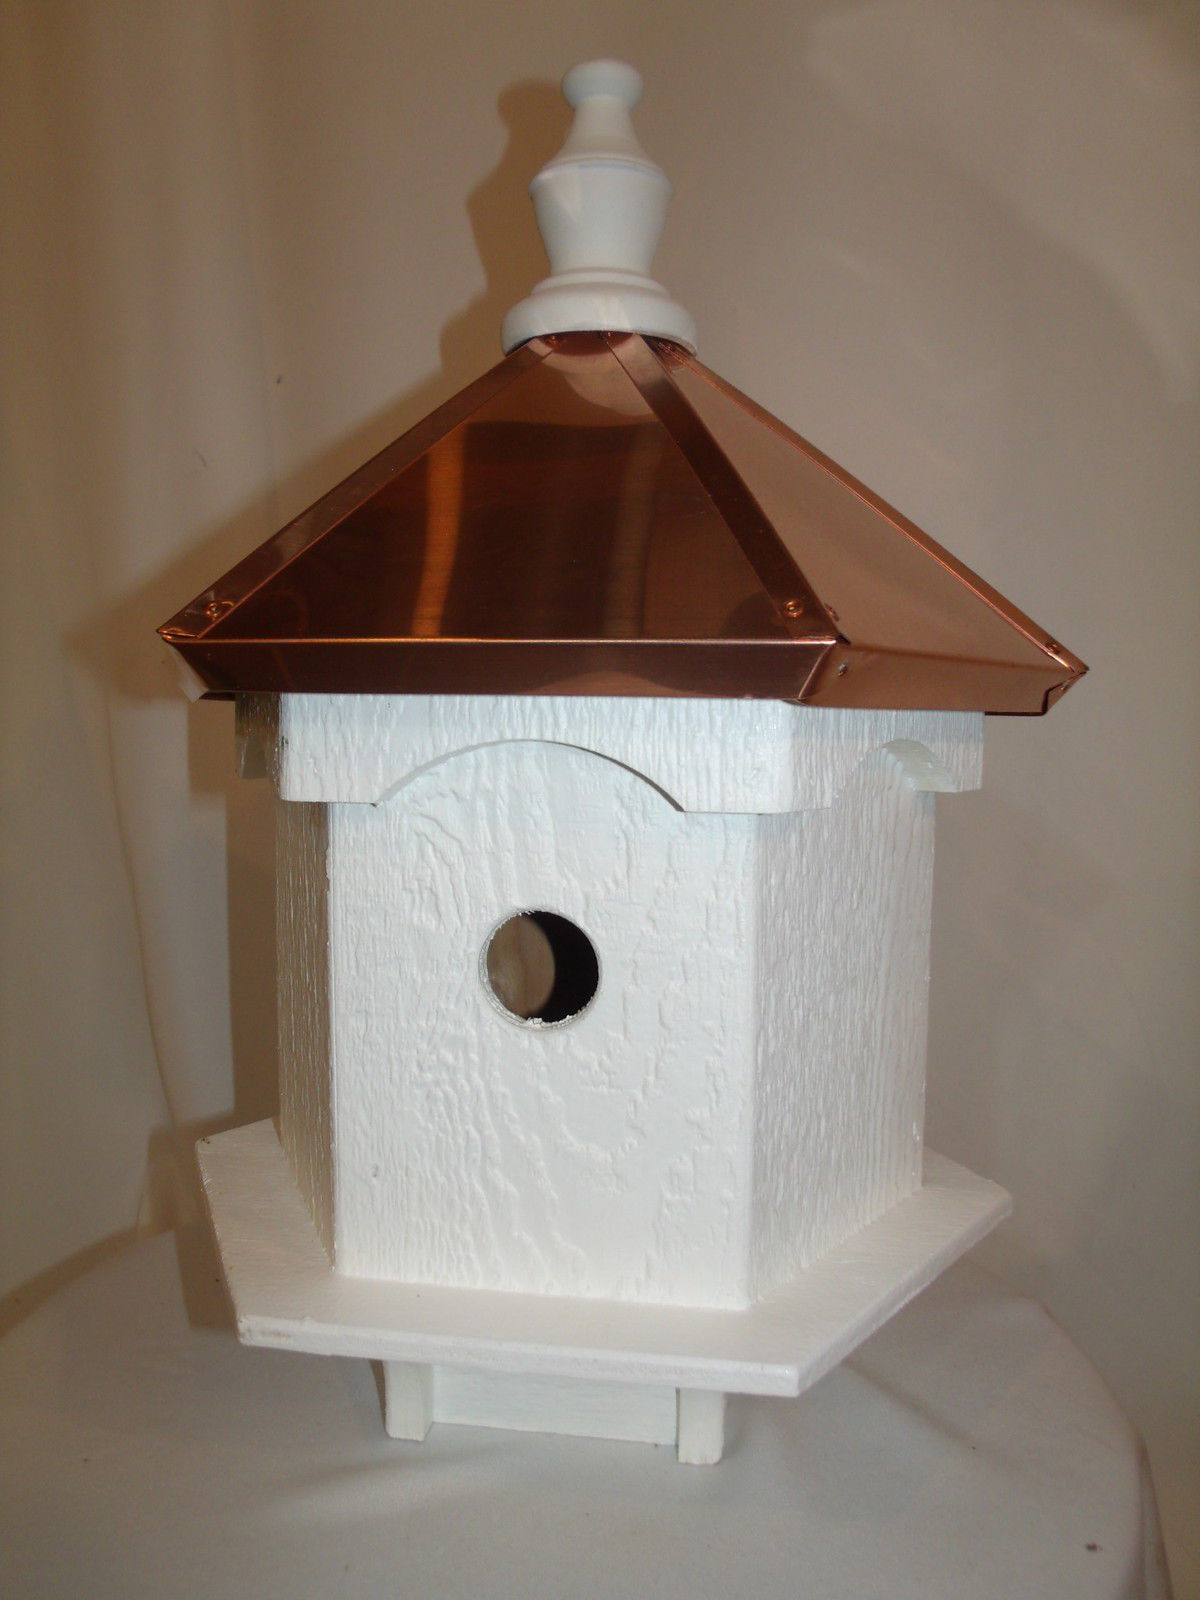 Copper Roof Birdhouse Hole